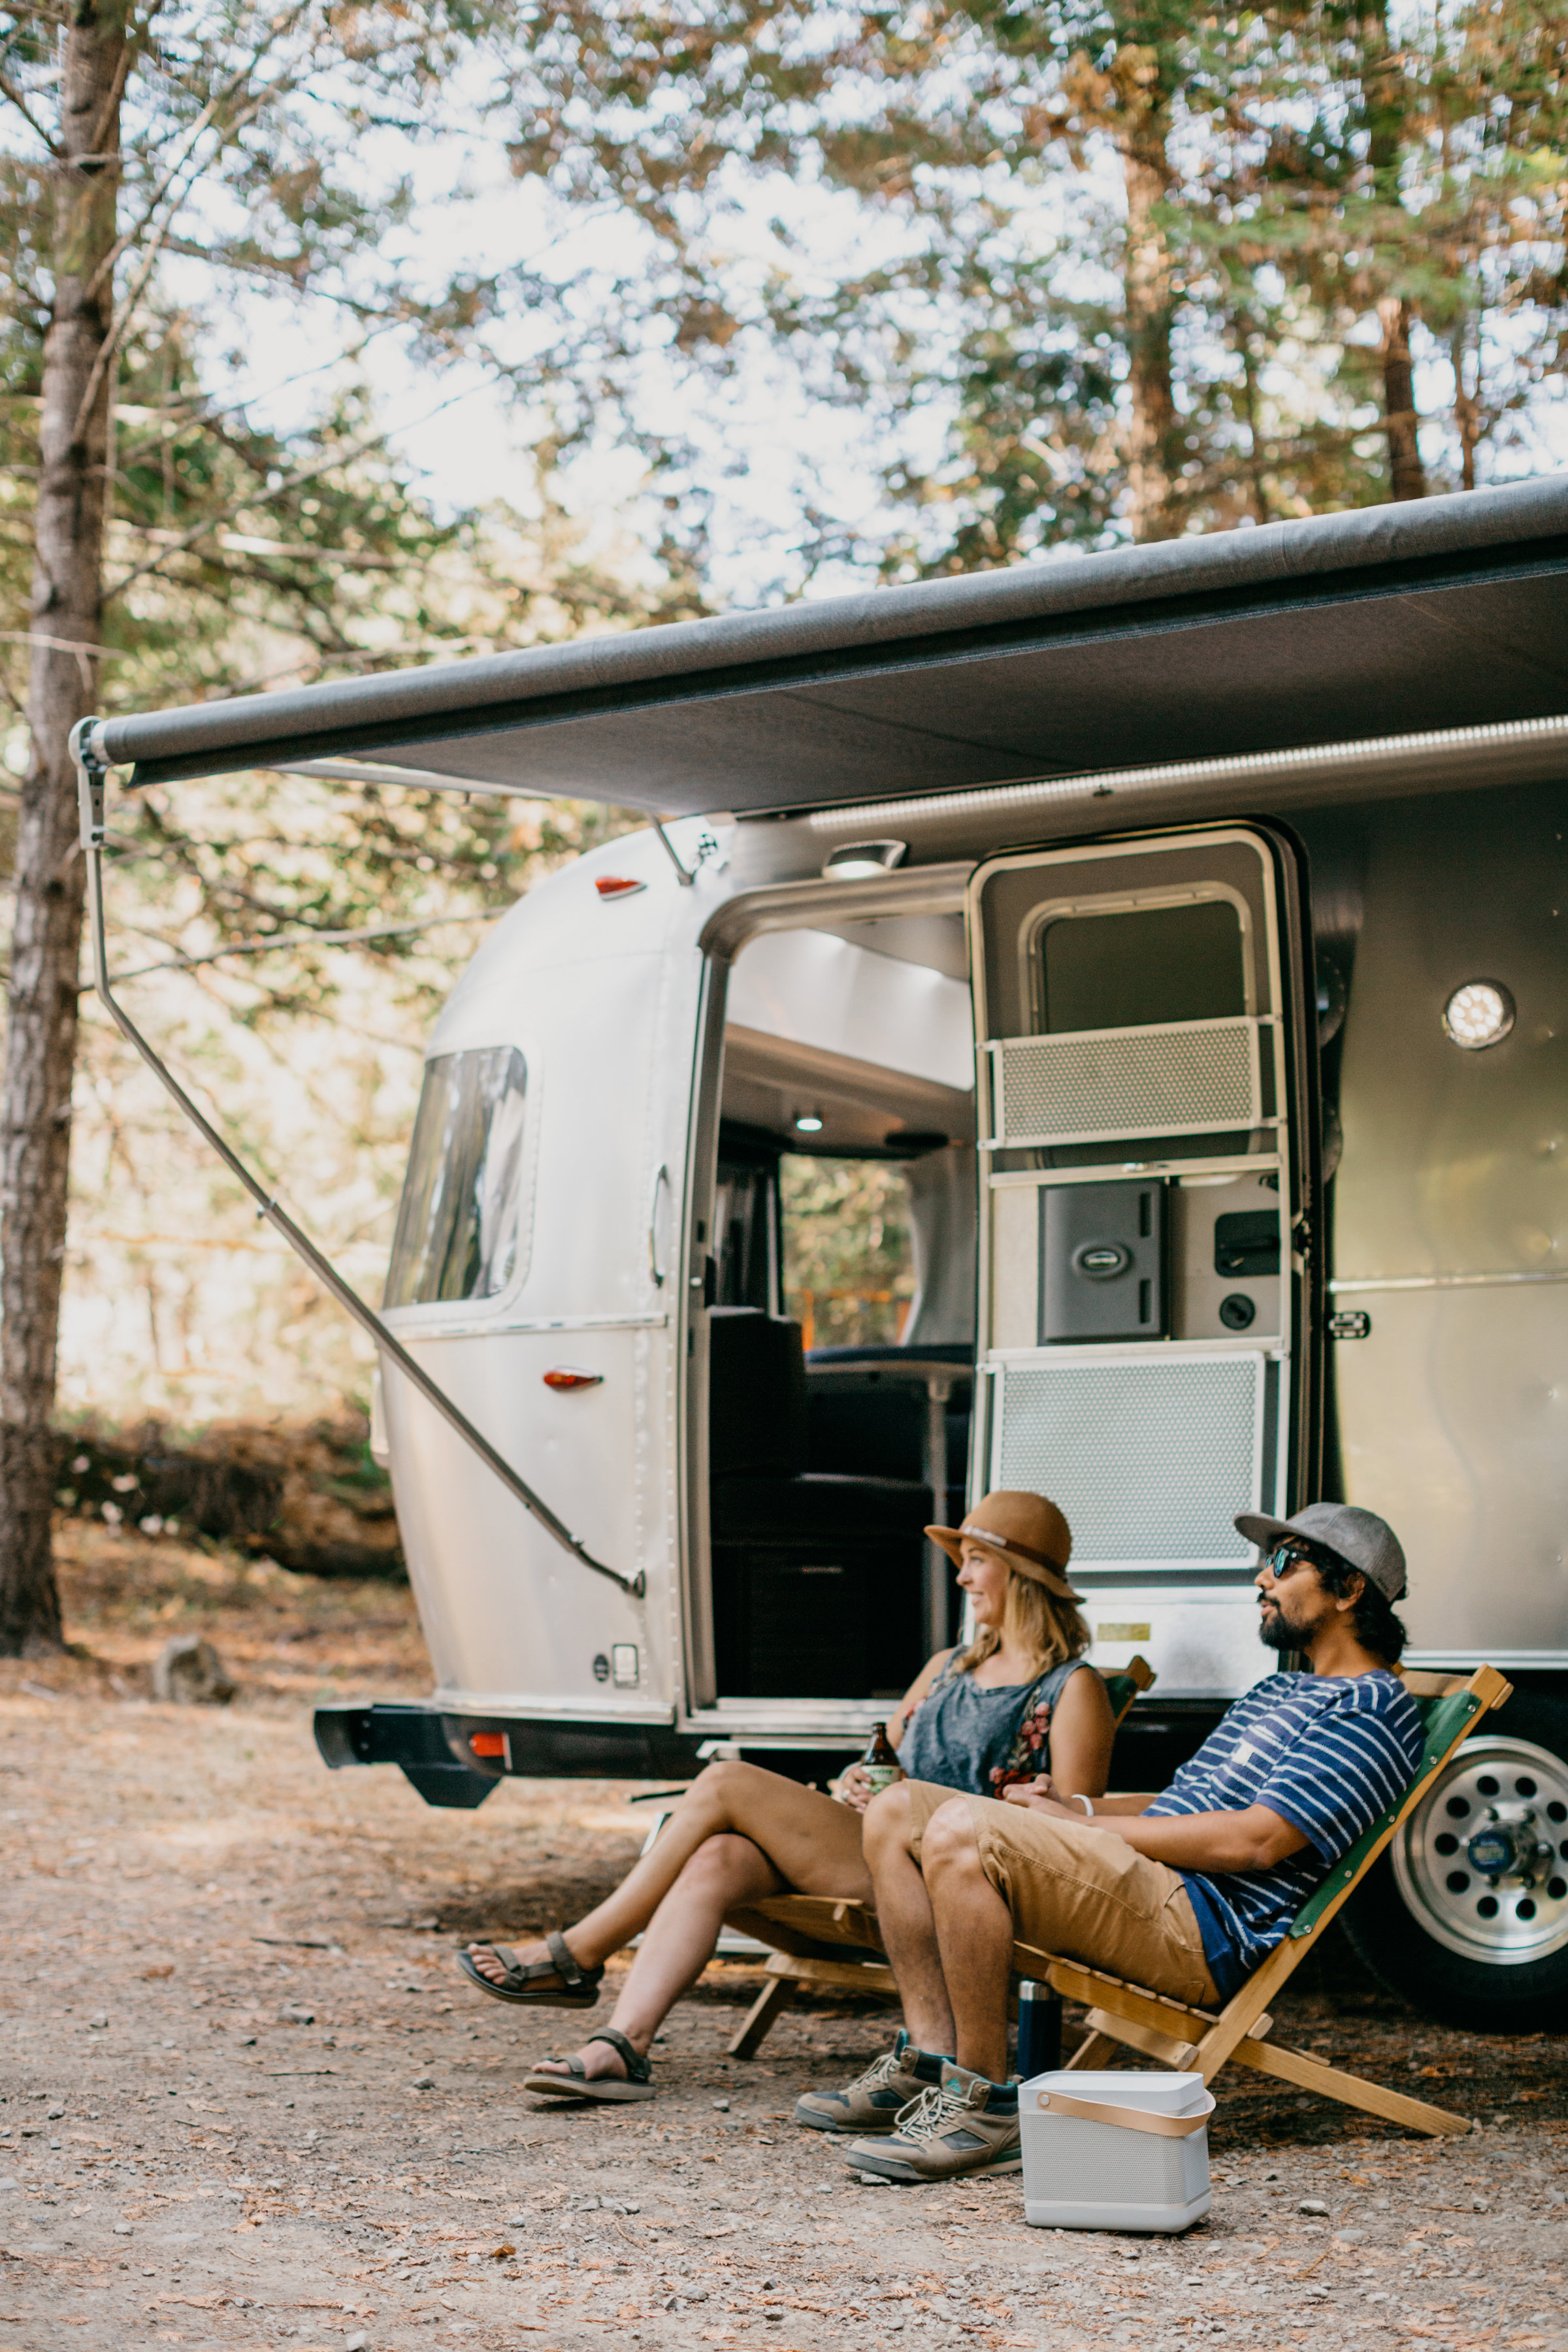 The Beolit 17 can crank out enough sound for the whole campground to enjoy